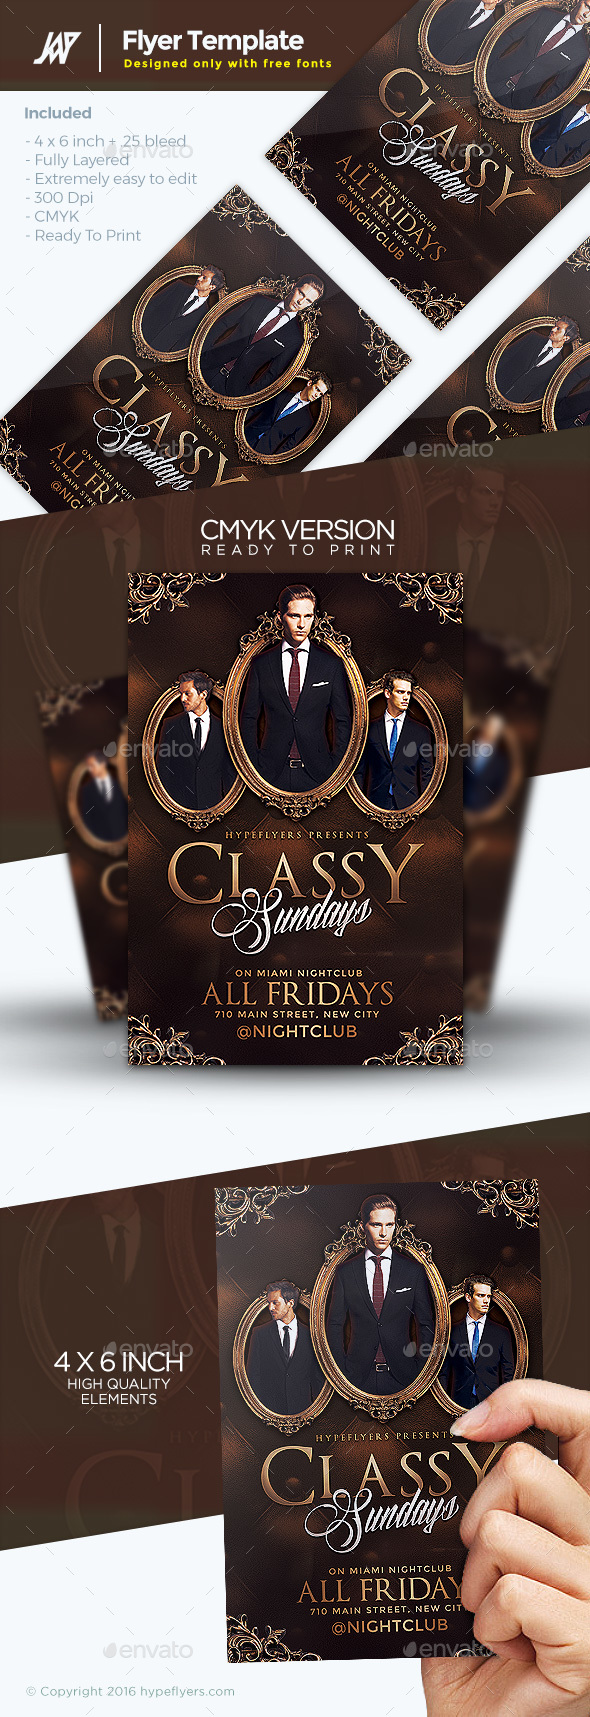 Classy Sundays Flyer Template - Clubs & Parties Events